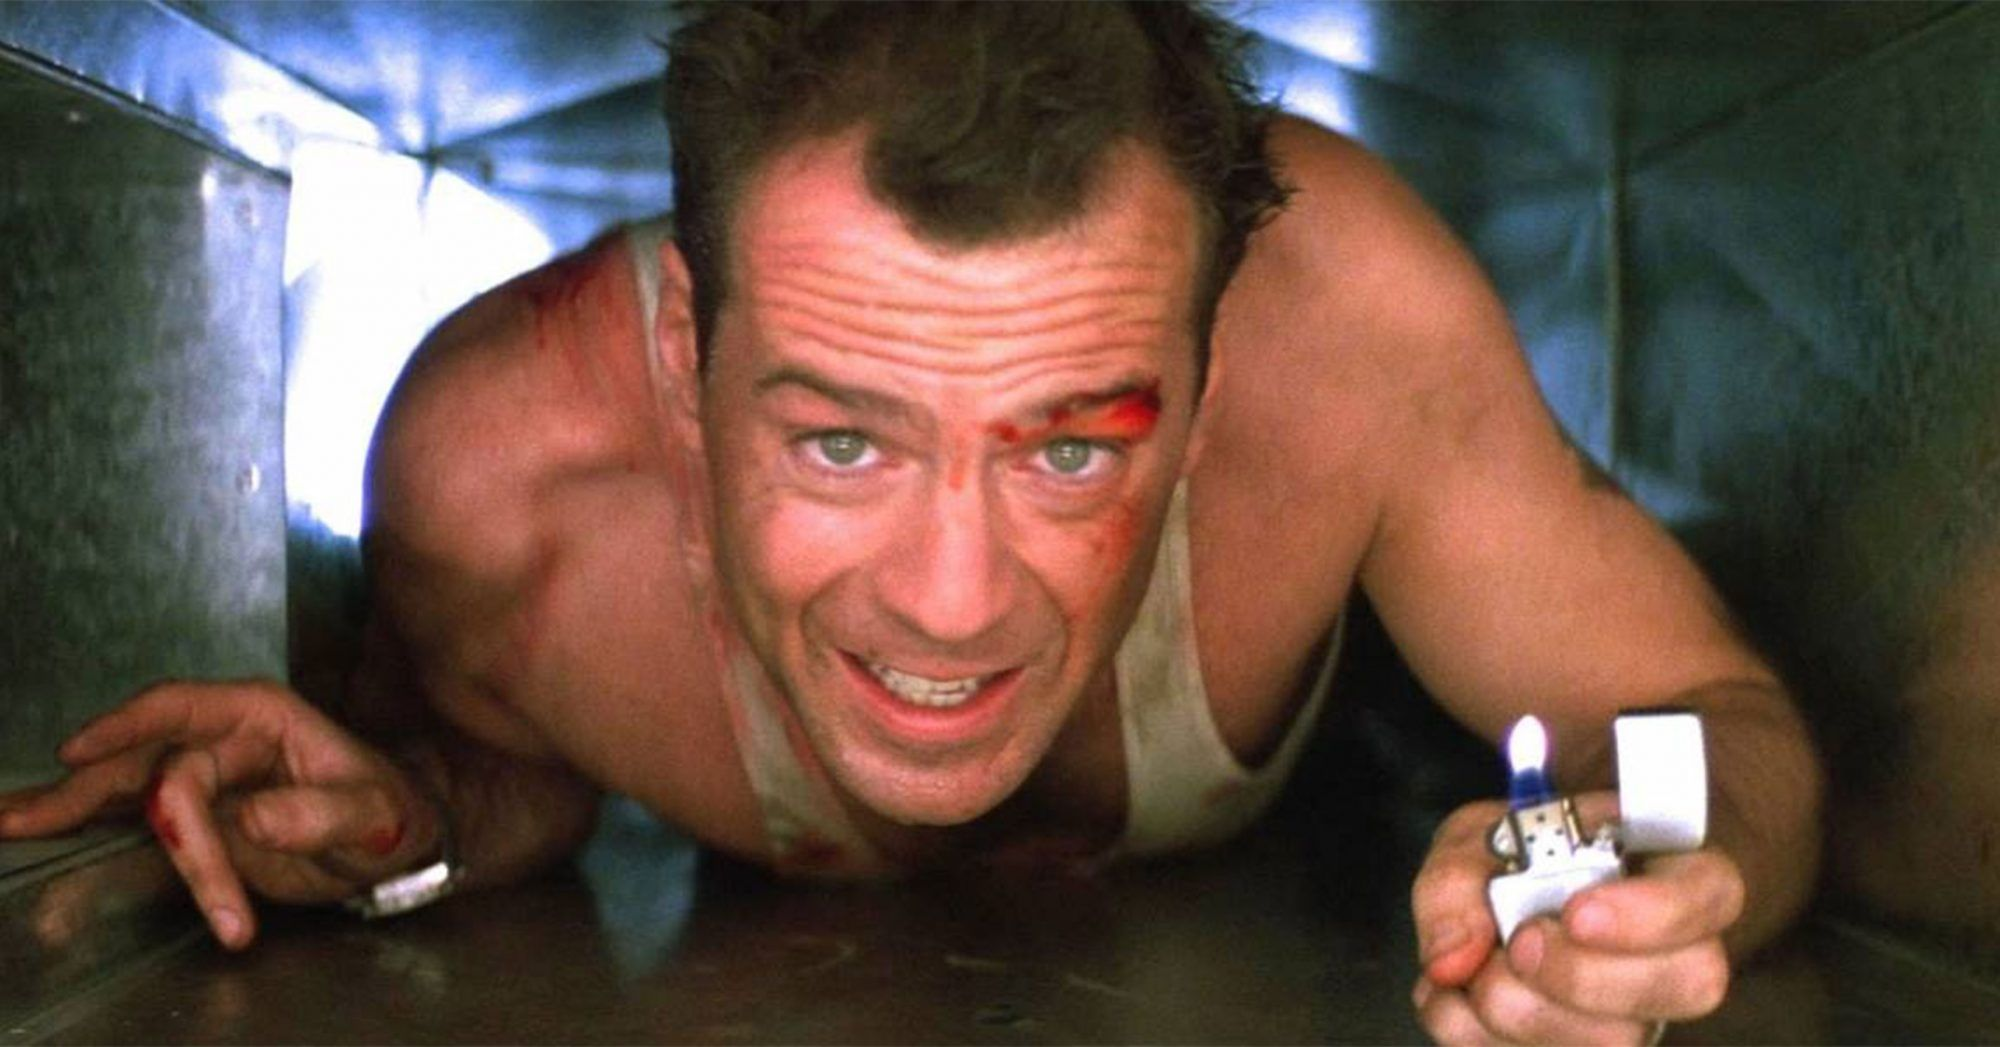 5 fun Die Hard facts from Netflix's The Movies That Made Us | EW.com